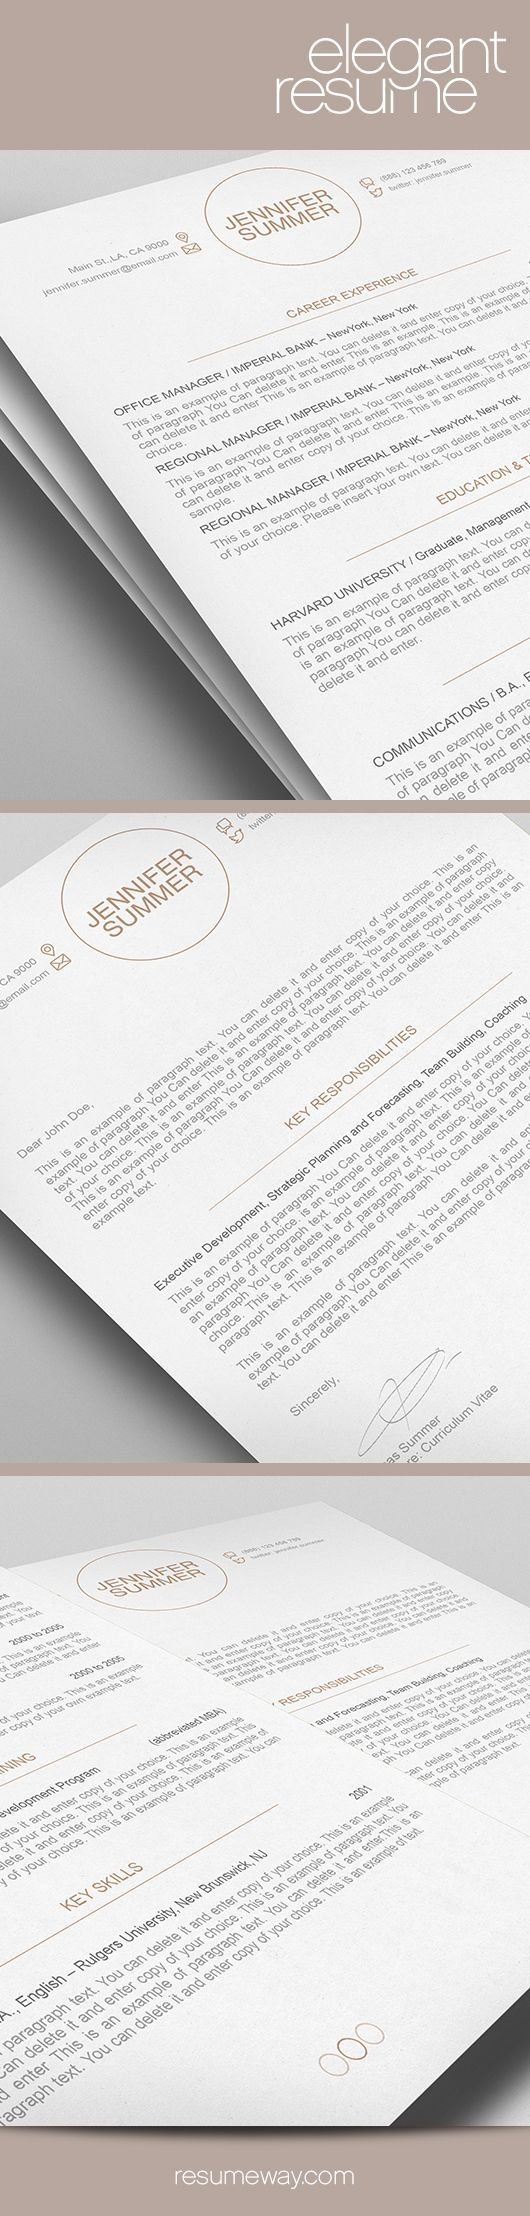 Elegant Resume Template - Premium line of Resume & Cover Letter Templates. Easy edit with MS Word, Apple Pages - CV, CurriculumVitae - $7.95